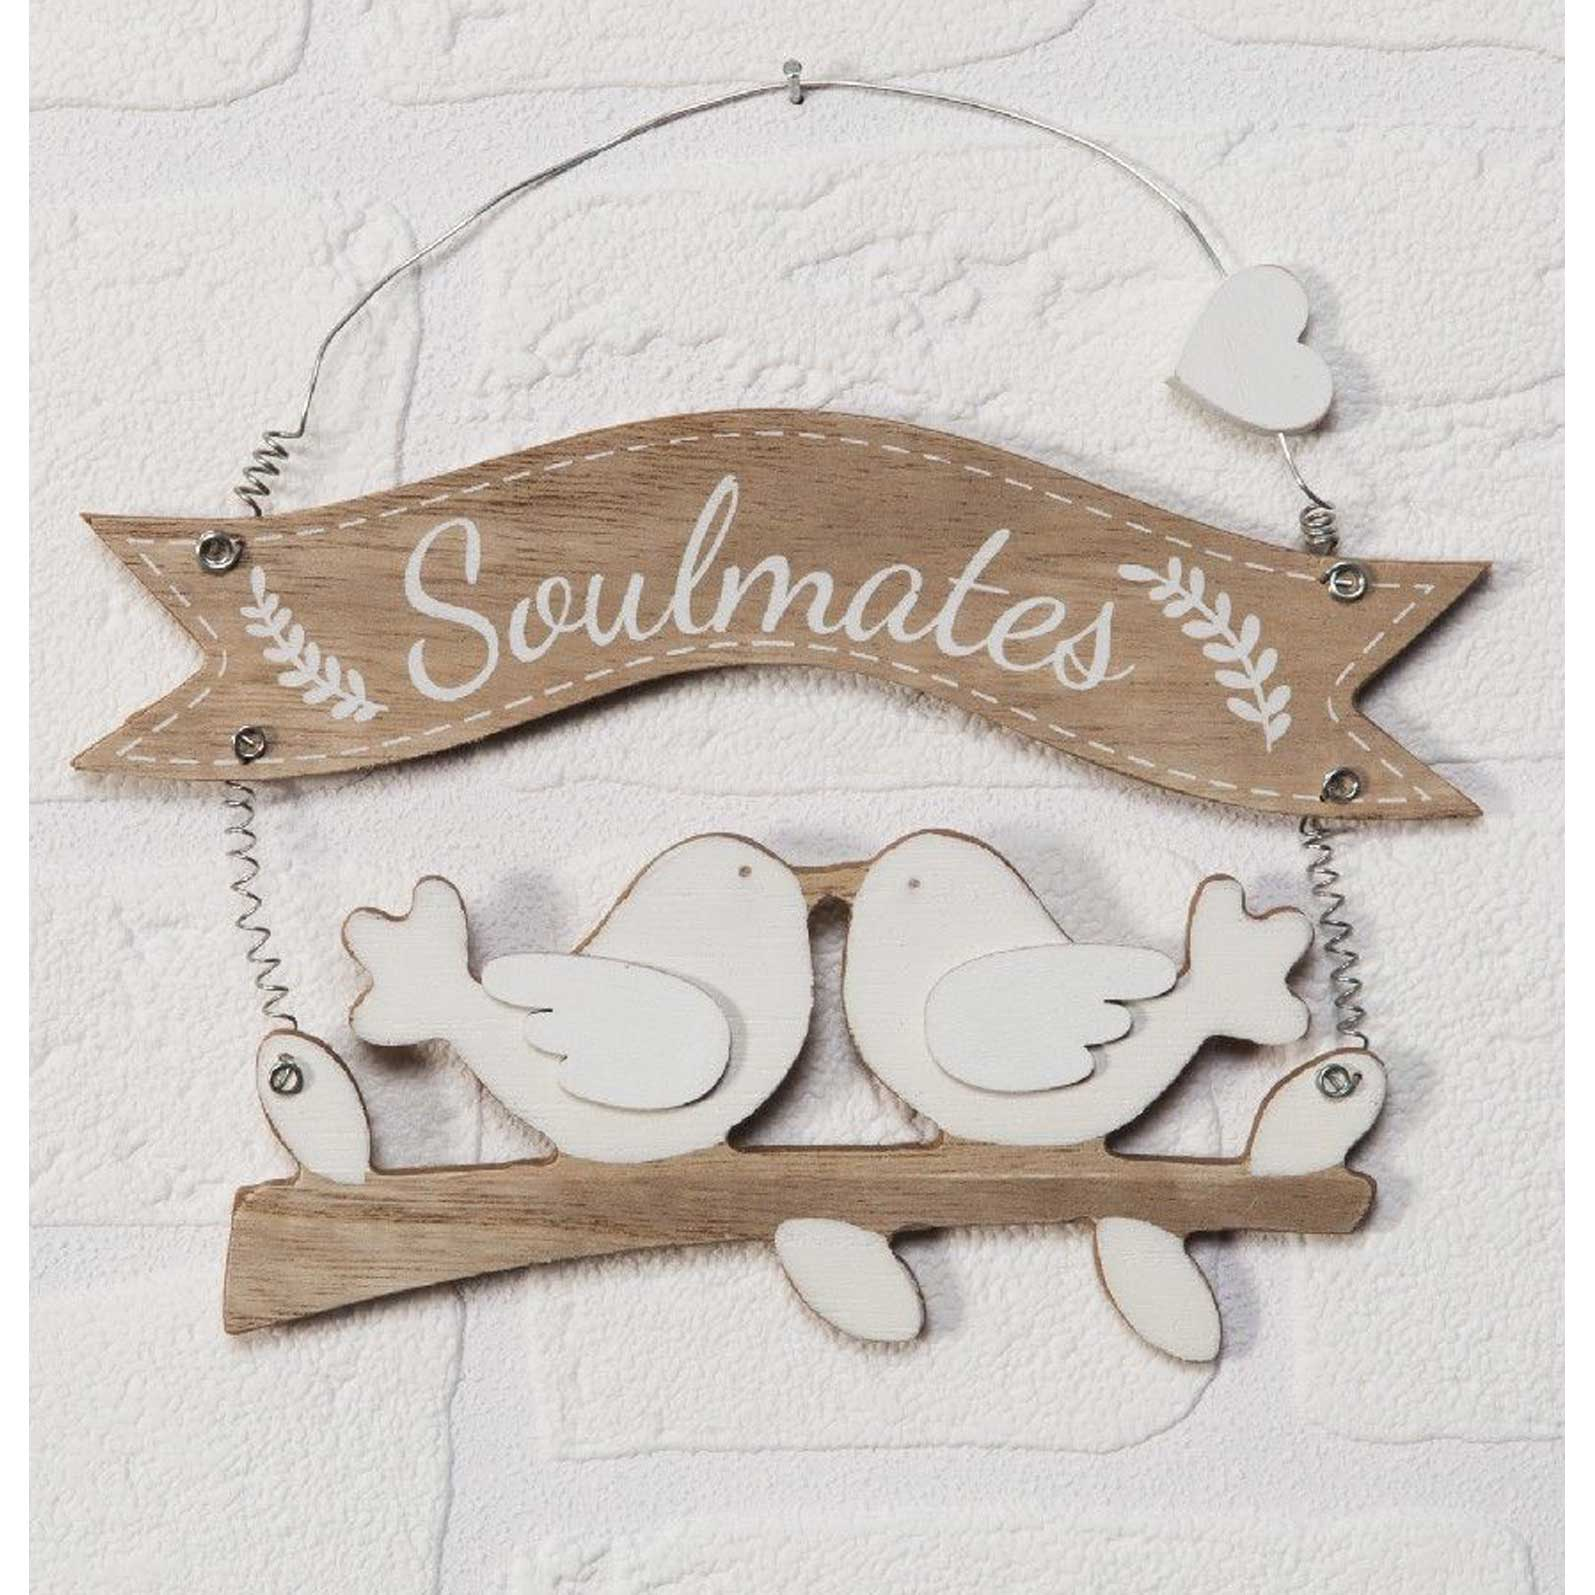 Celebrations Love Story Collection - Soulmates Wooden painted Plaque.